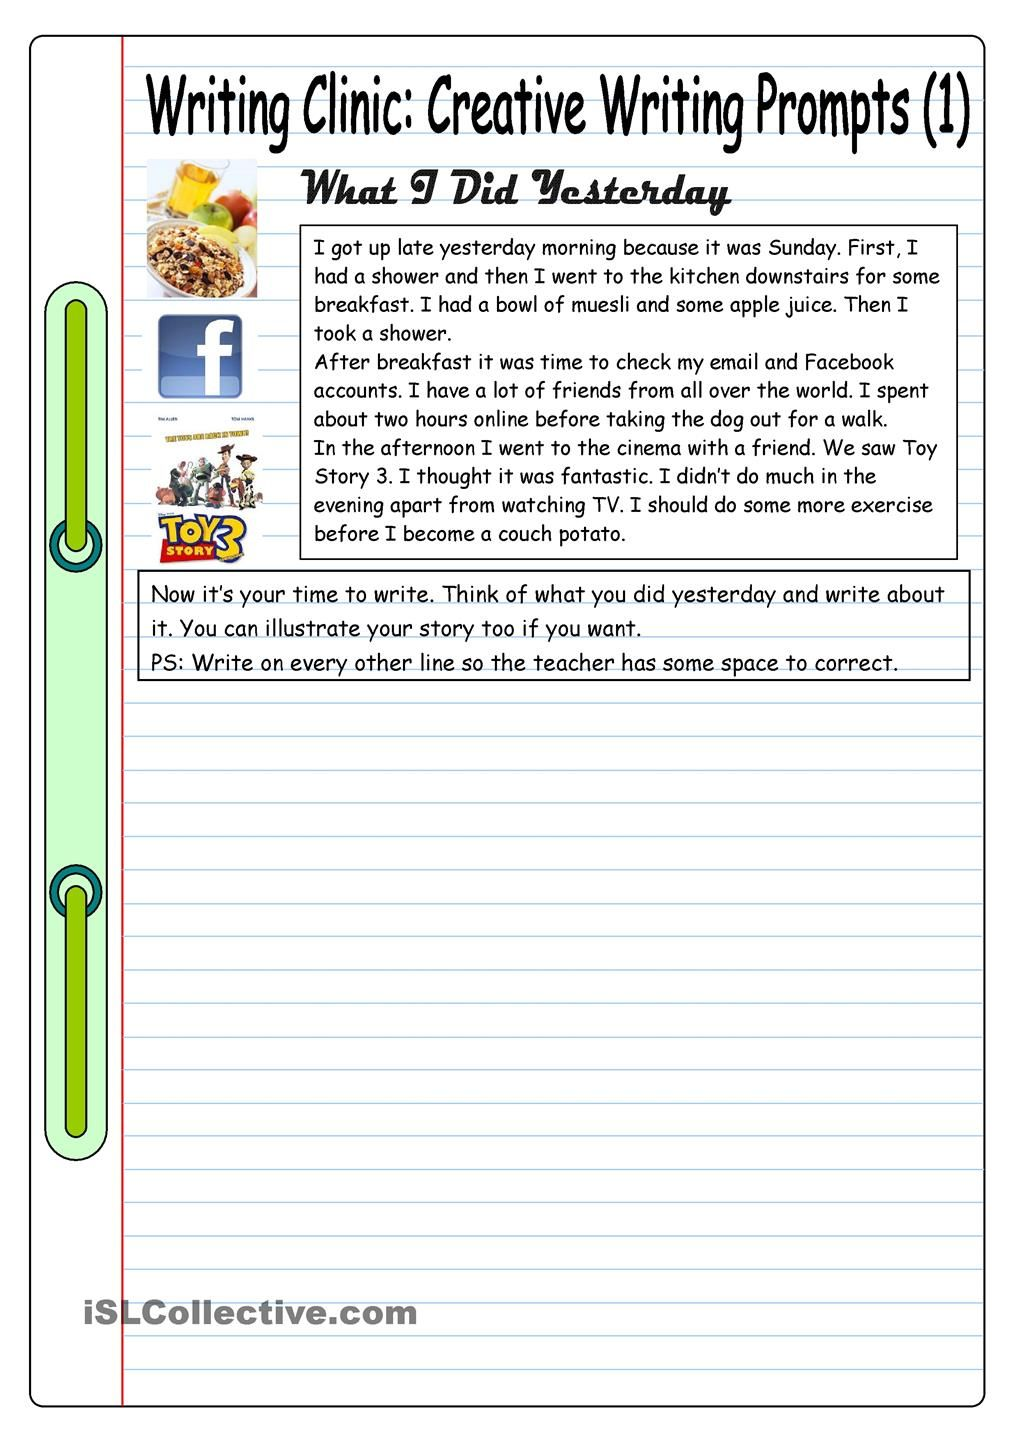 worksheet Creative Writing Prompts Worksheets writing clinic creative prompts 1 what i did yesterday to get students this worksheet comes with a short sample story so stud